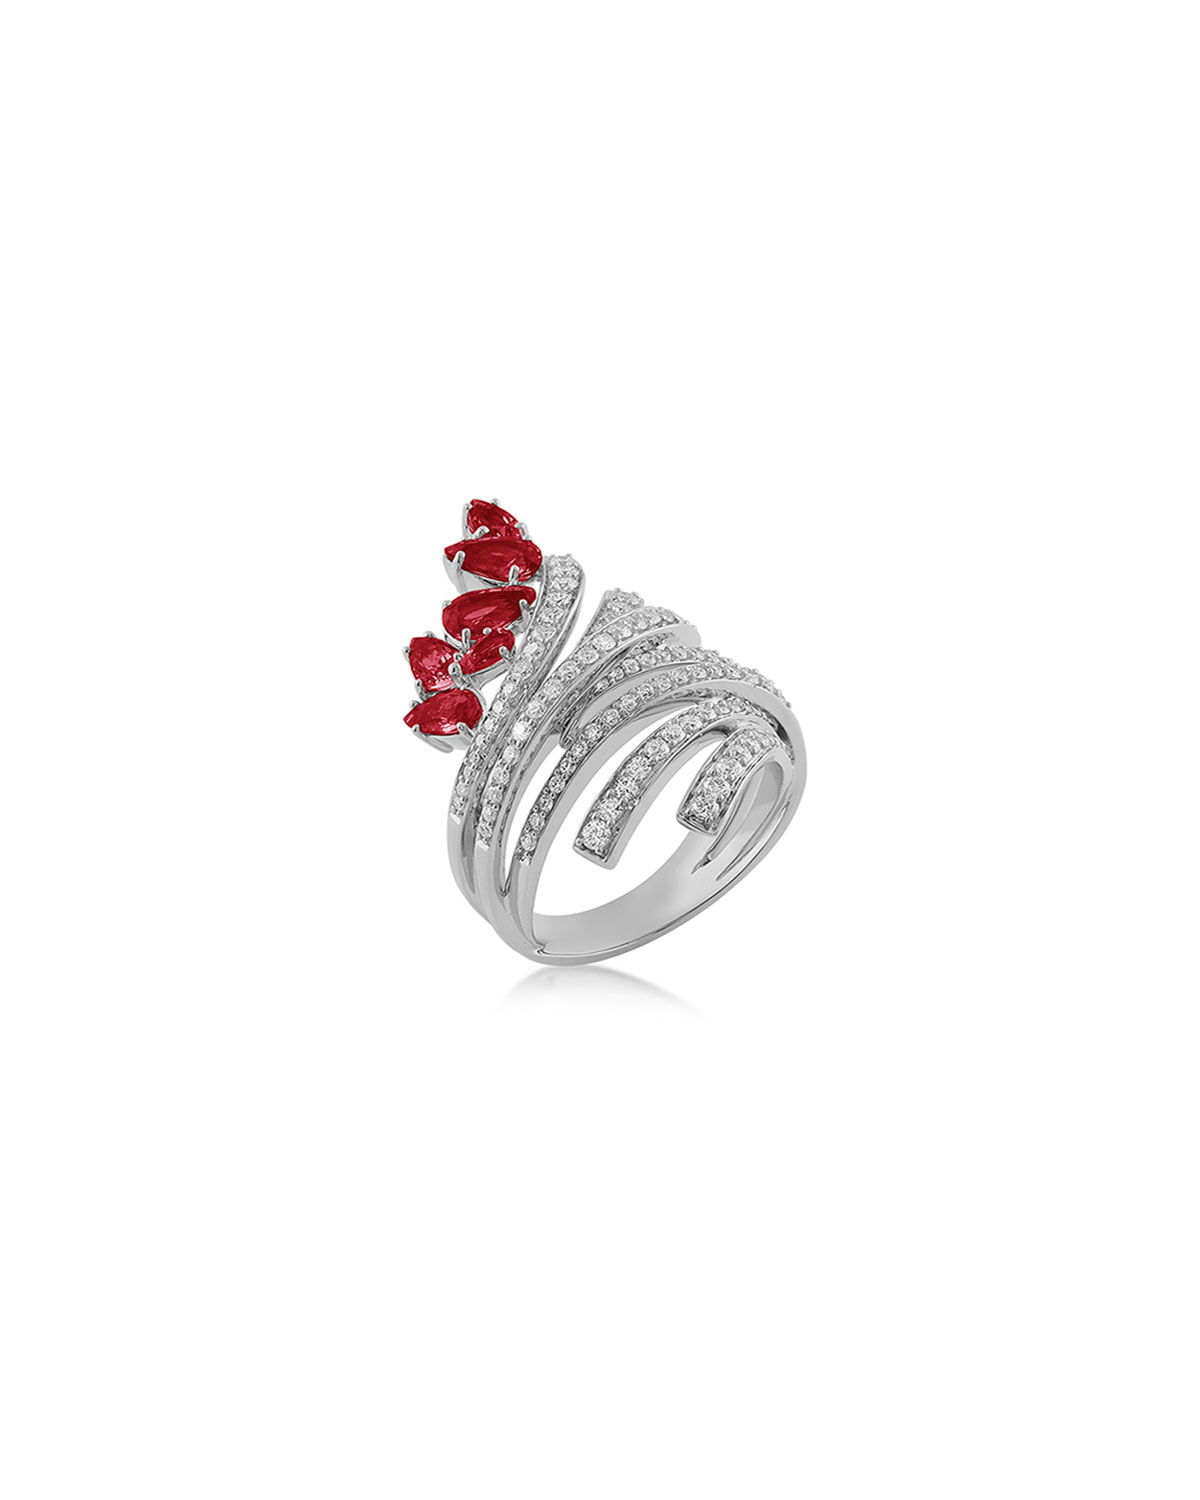 Mirage 18k White Gold Ruby and Diamond Ring